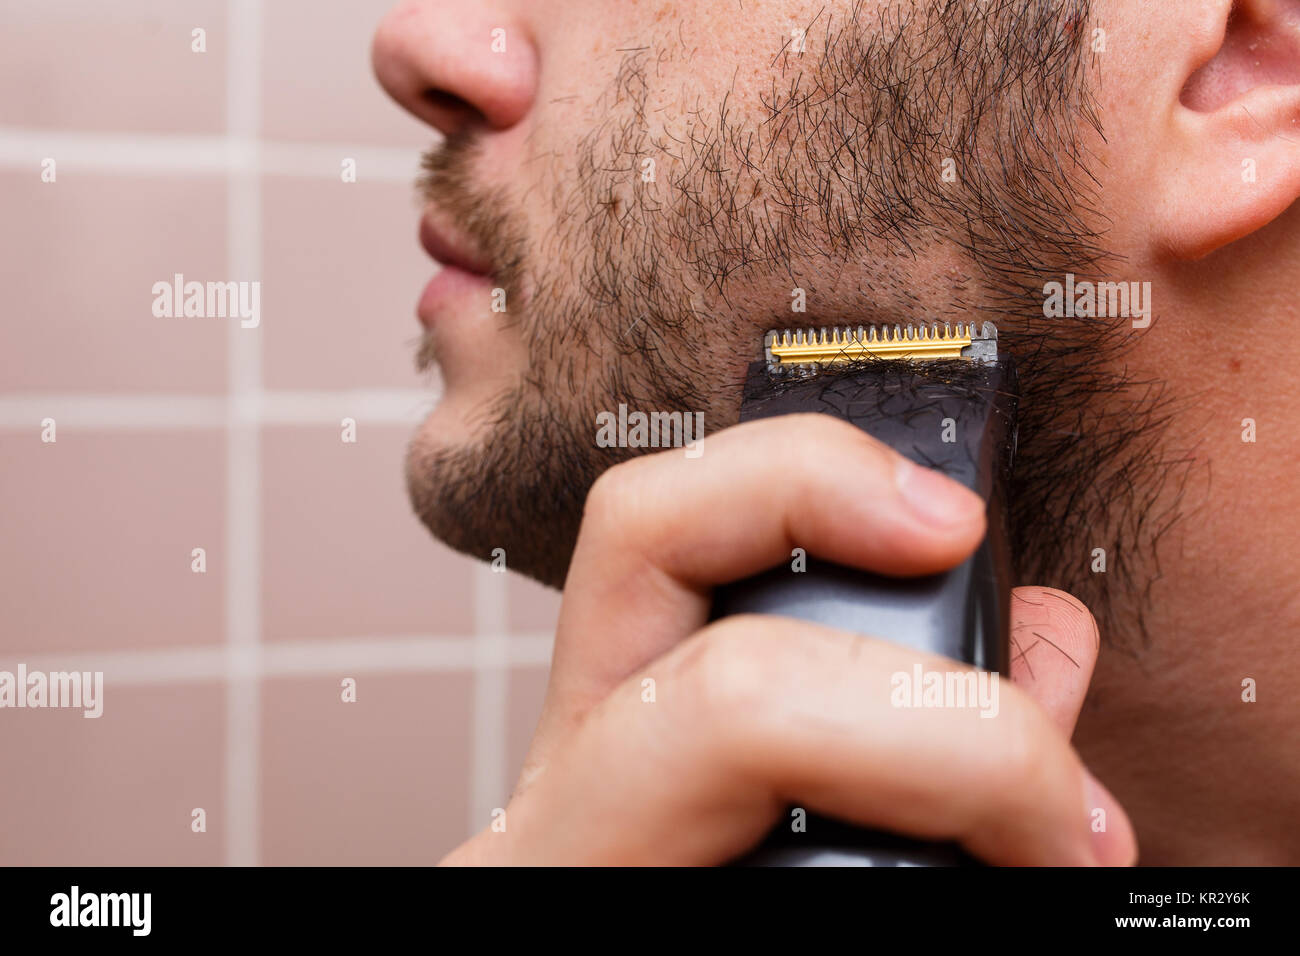 Man shaving with trimmer Stock Photo